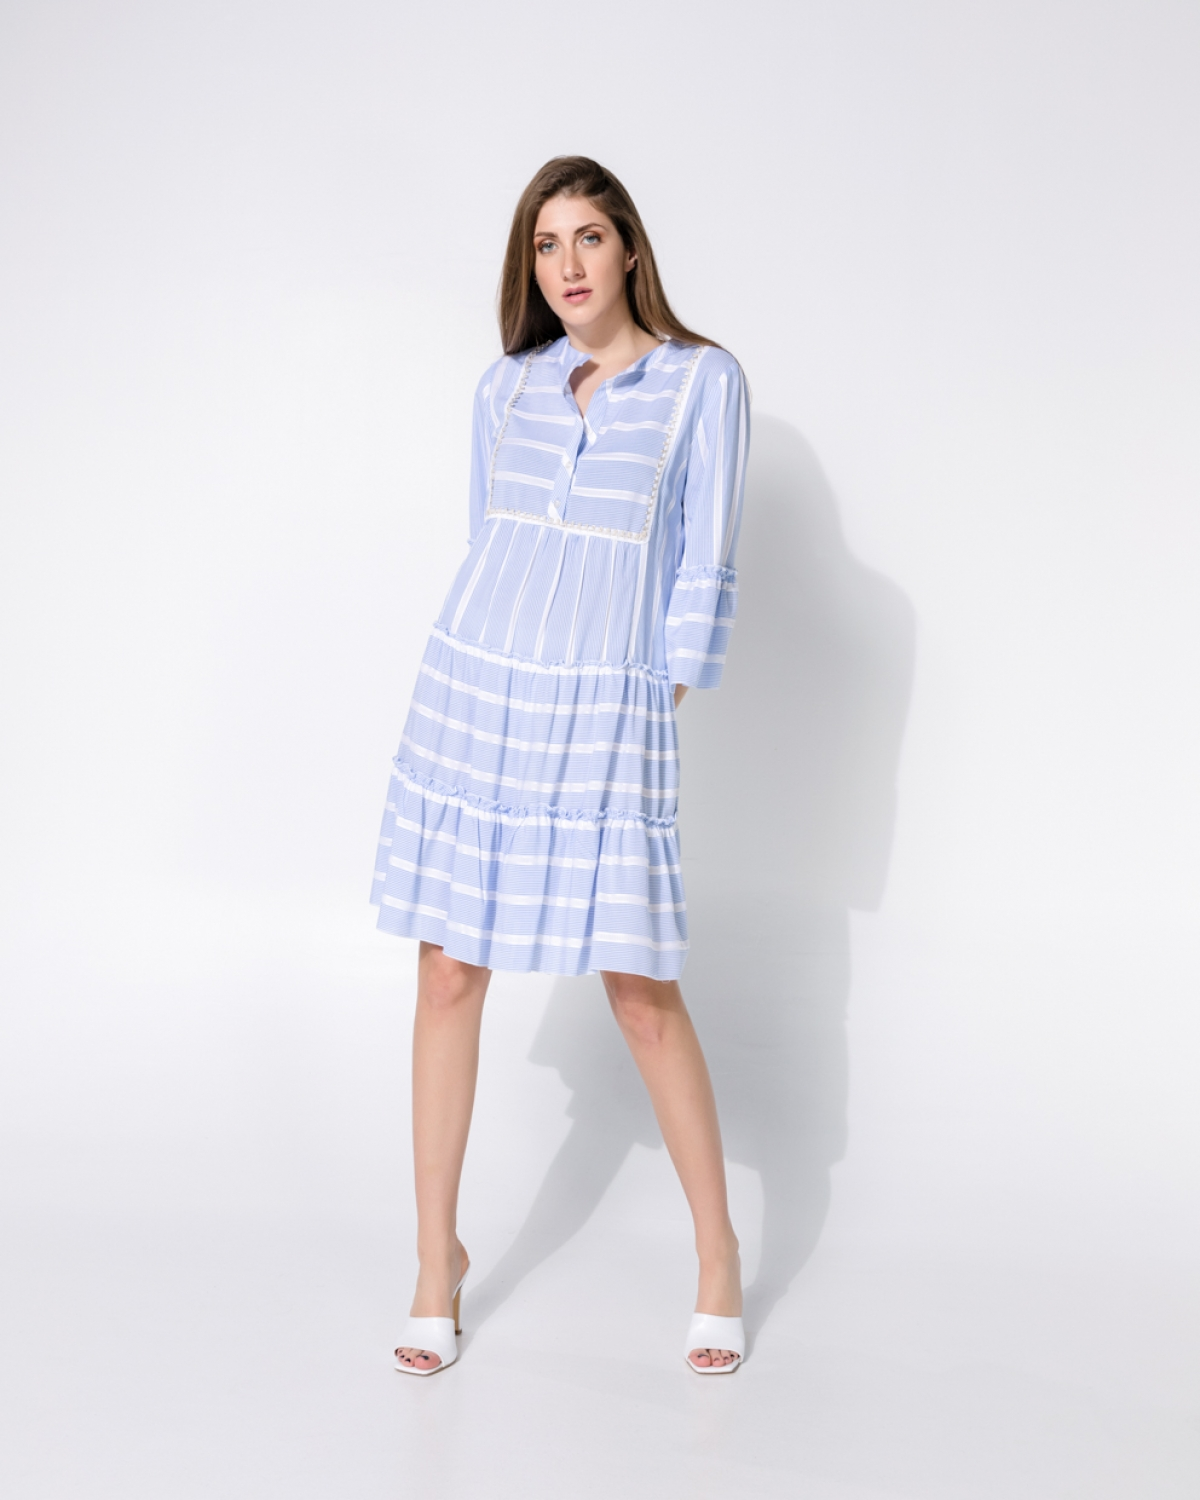 Chamellea Light Blue Dress